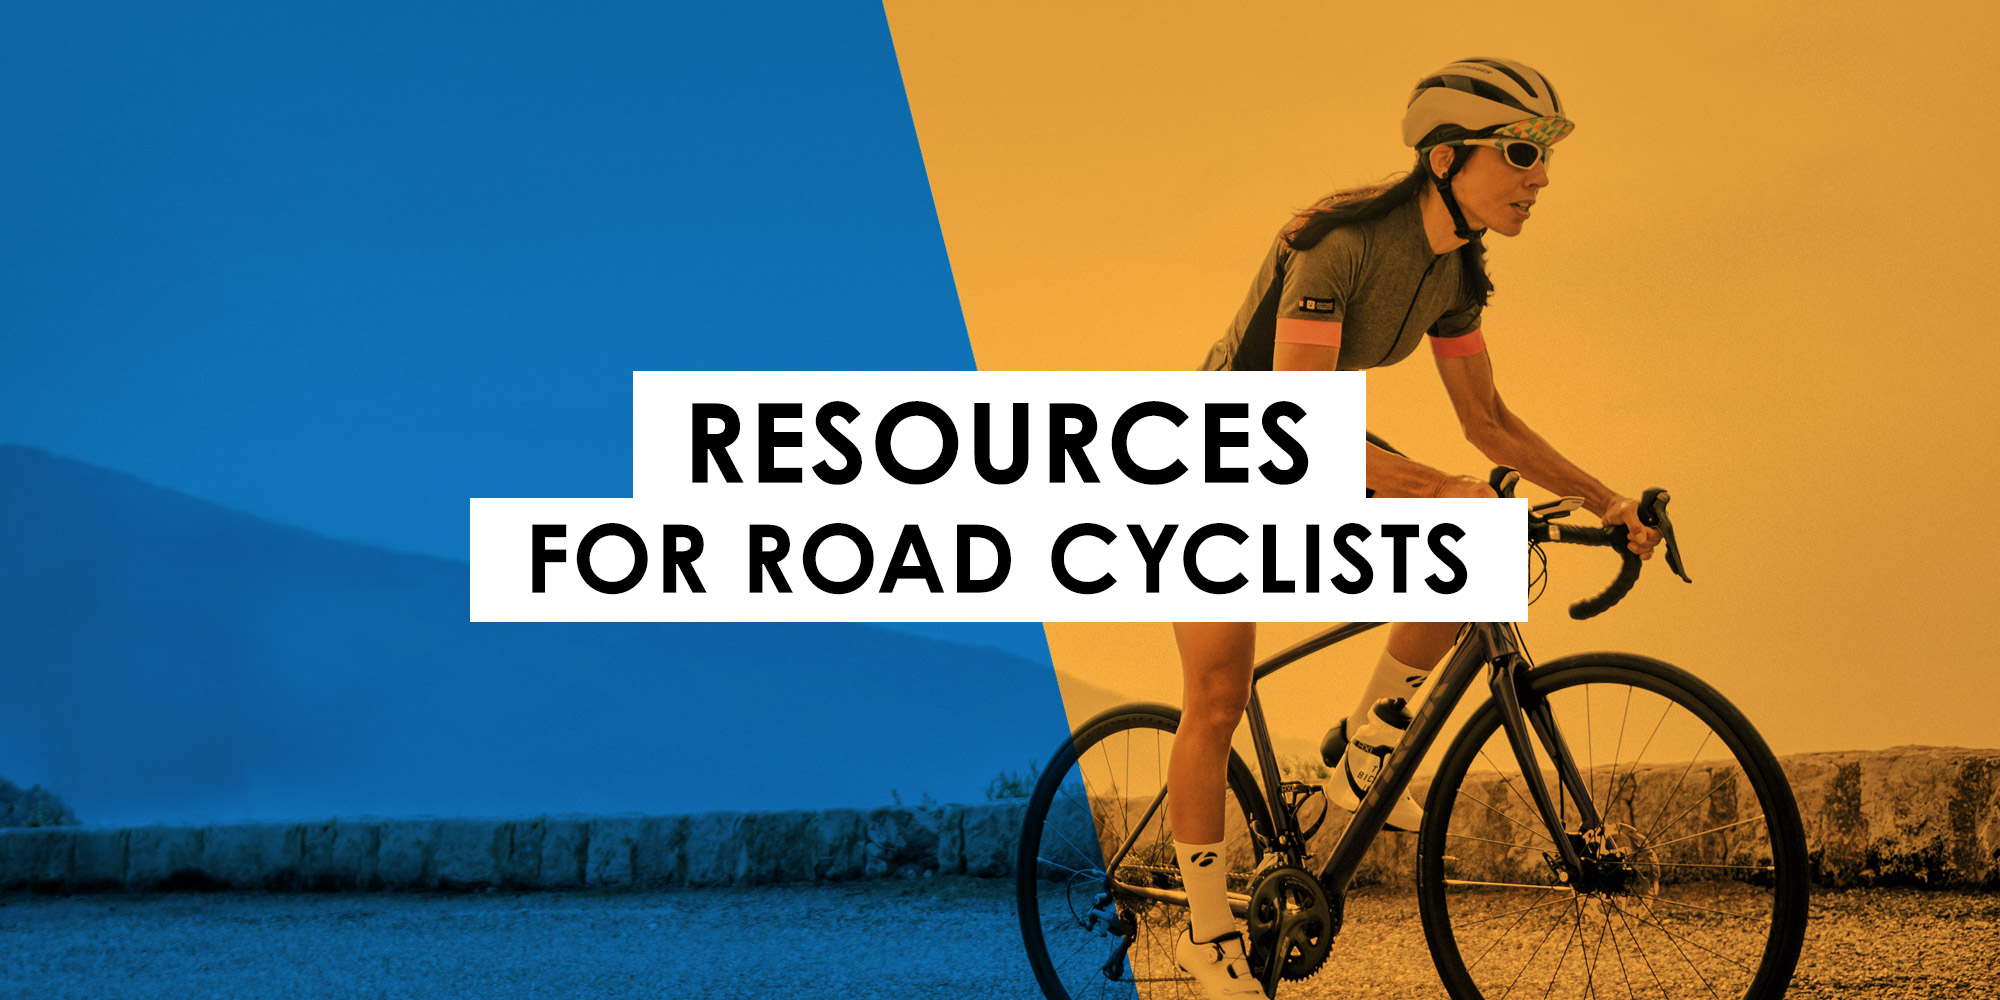 Resources for Road Cyclists